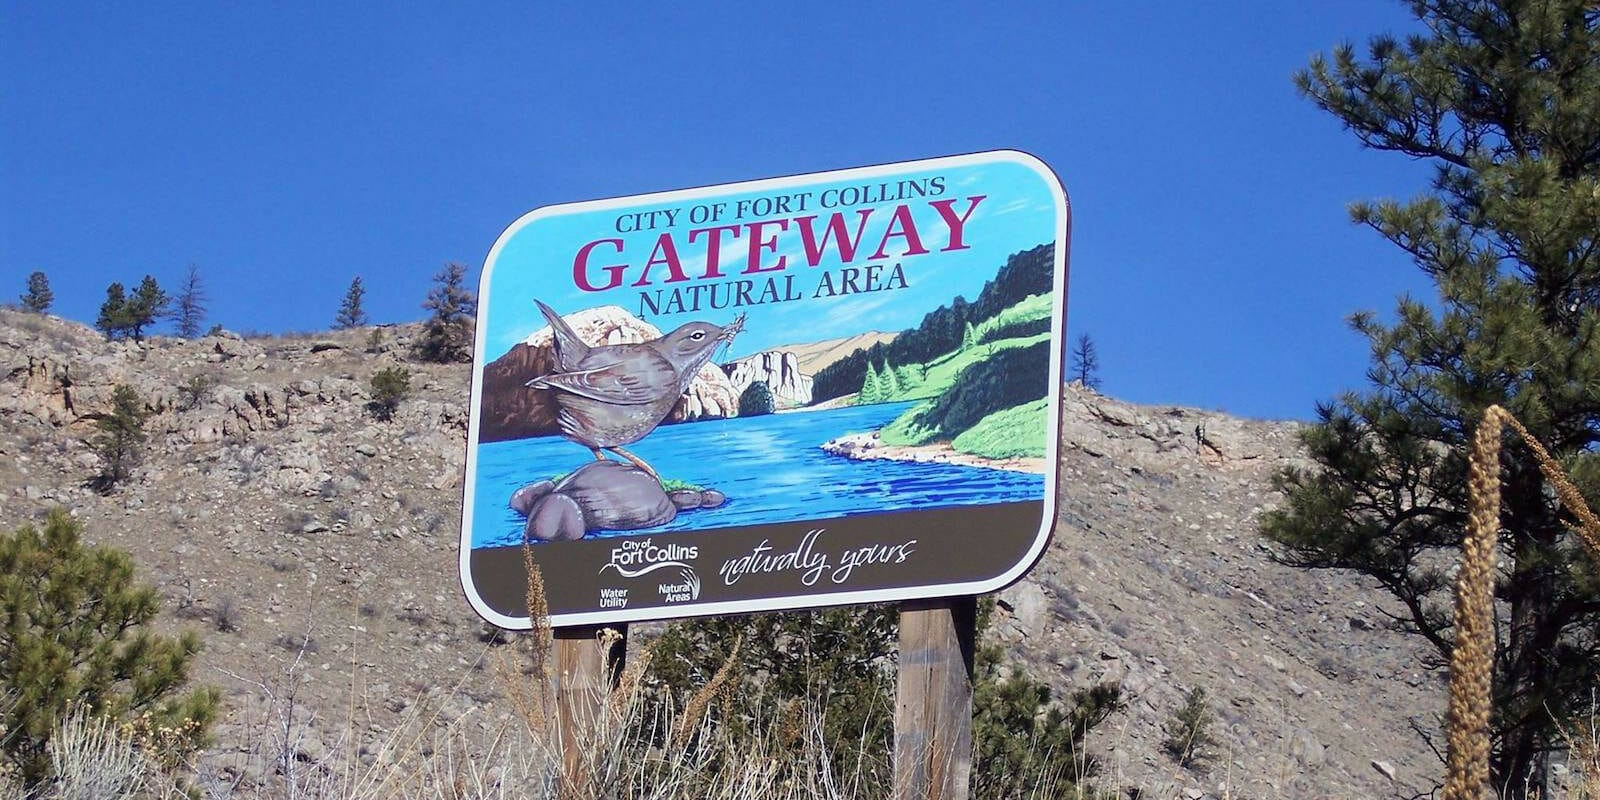 Image of the sign to the Gateway Natural Area in Colorado